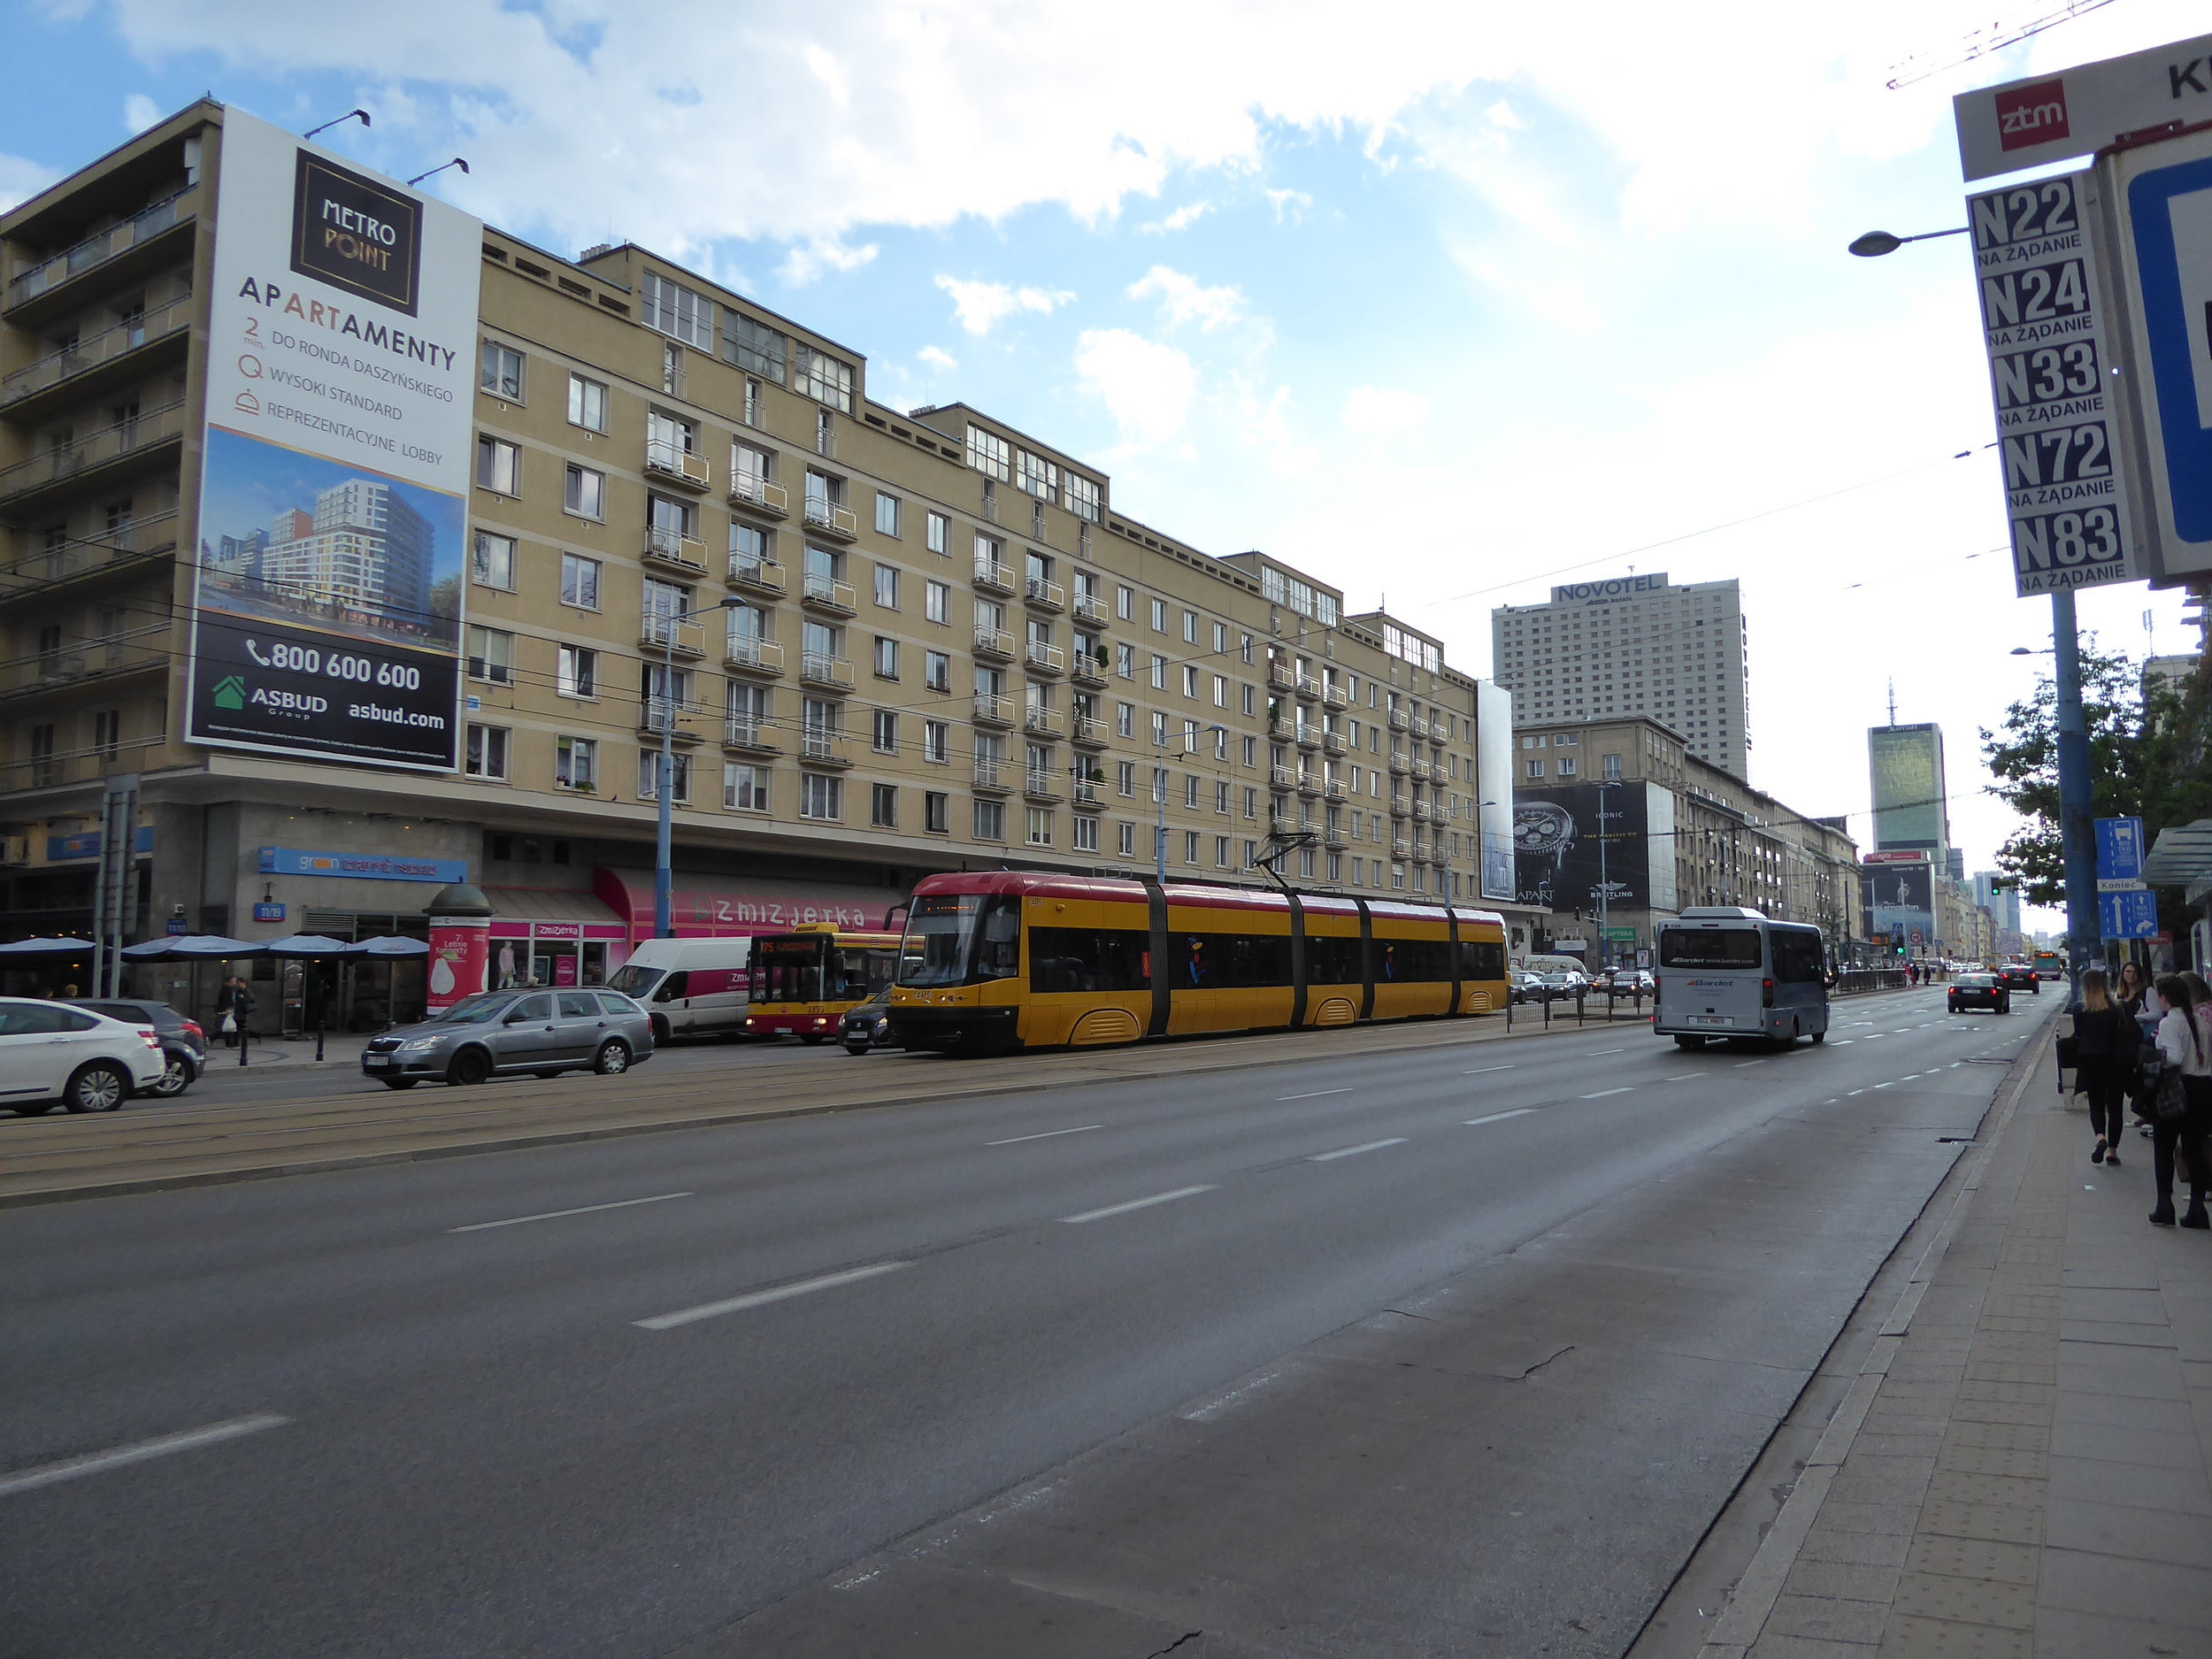 While much of Warsaw looks like this . . .